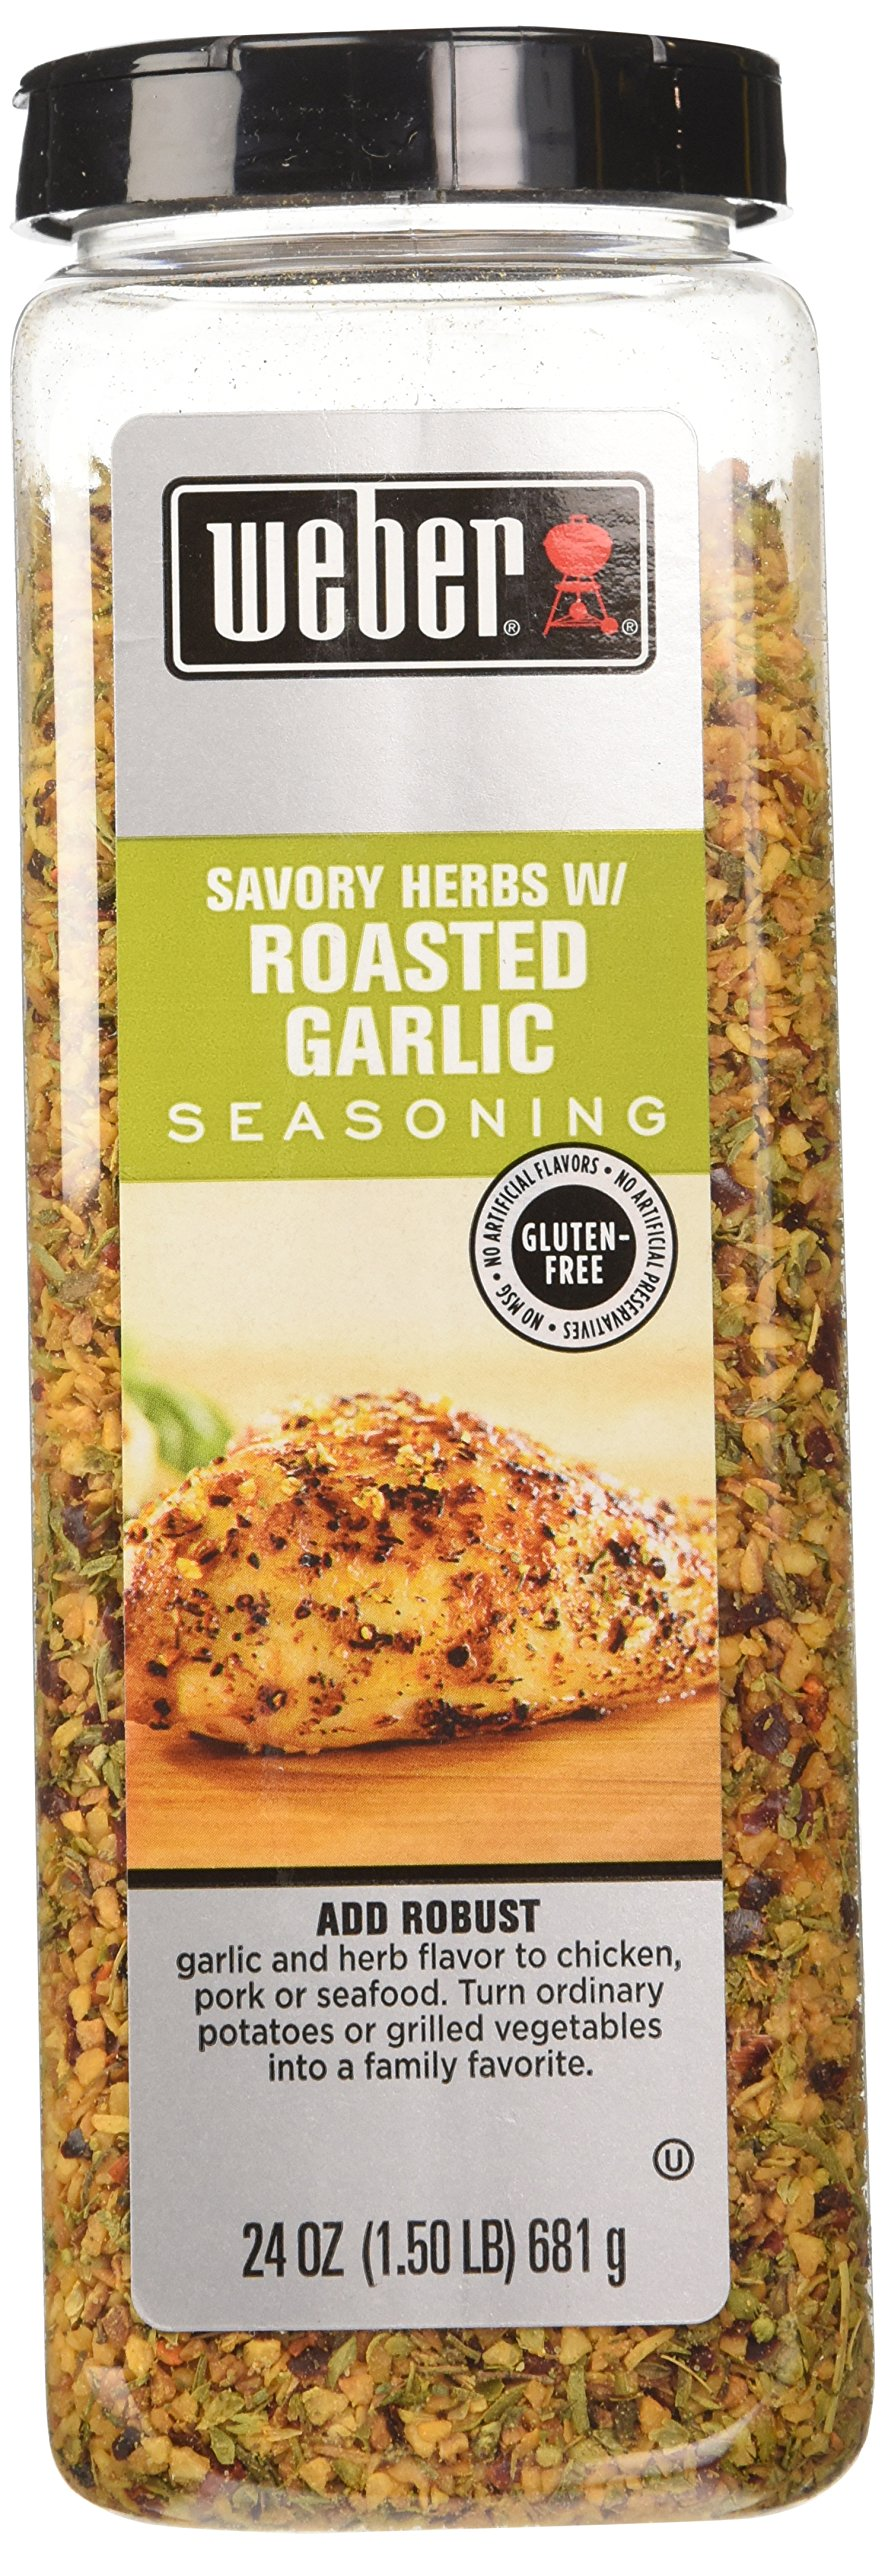 Weber All Natural Savory Herbs w/ Roasted Garlic Seasoning, No MSG, Gluten Free